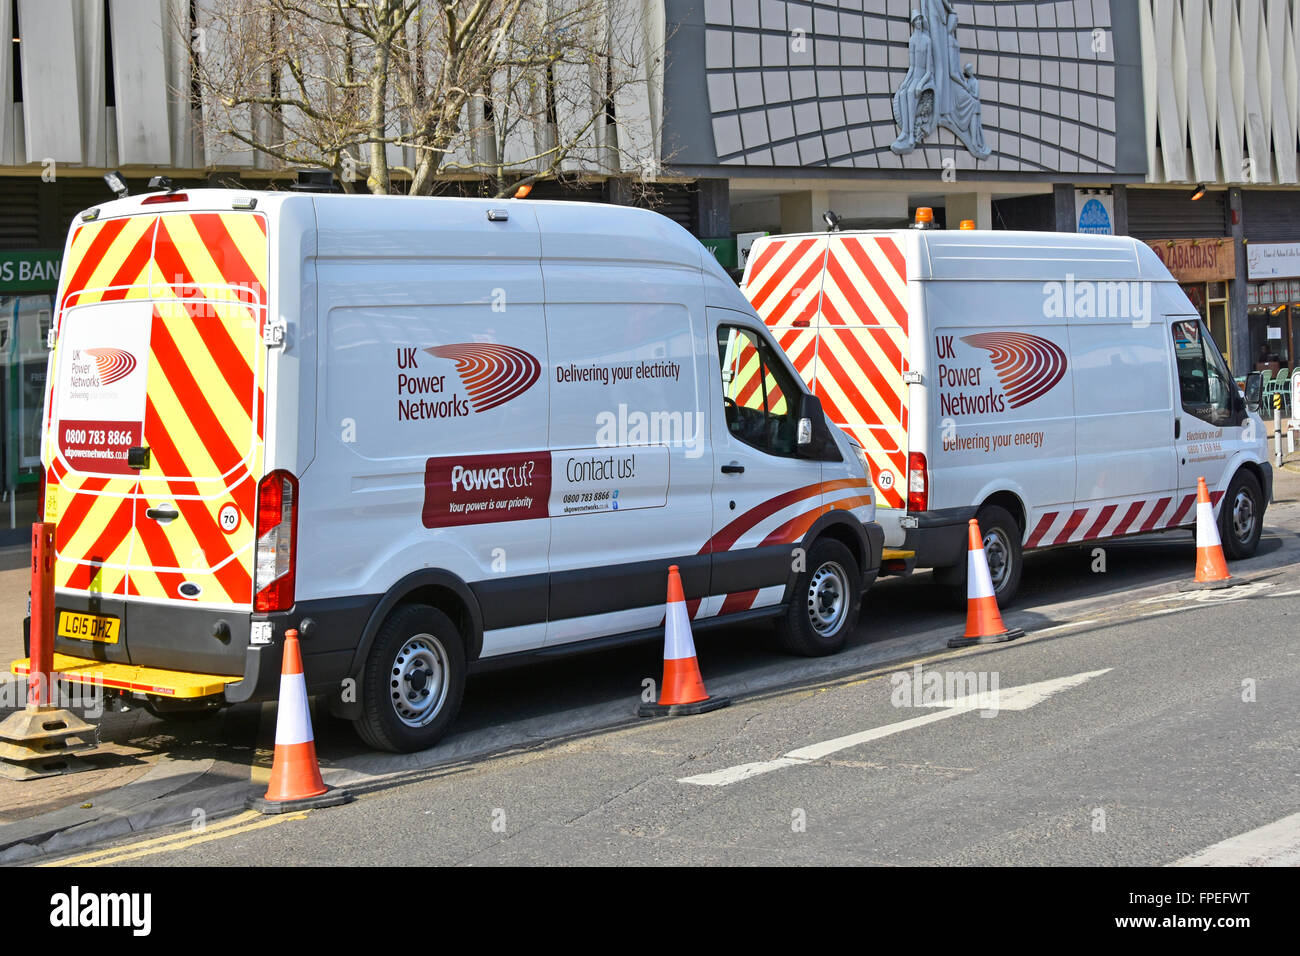 Two UK Power Networks vans parked up during street works to underground electricity supplies in East Croydon South - Stock Image